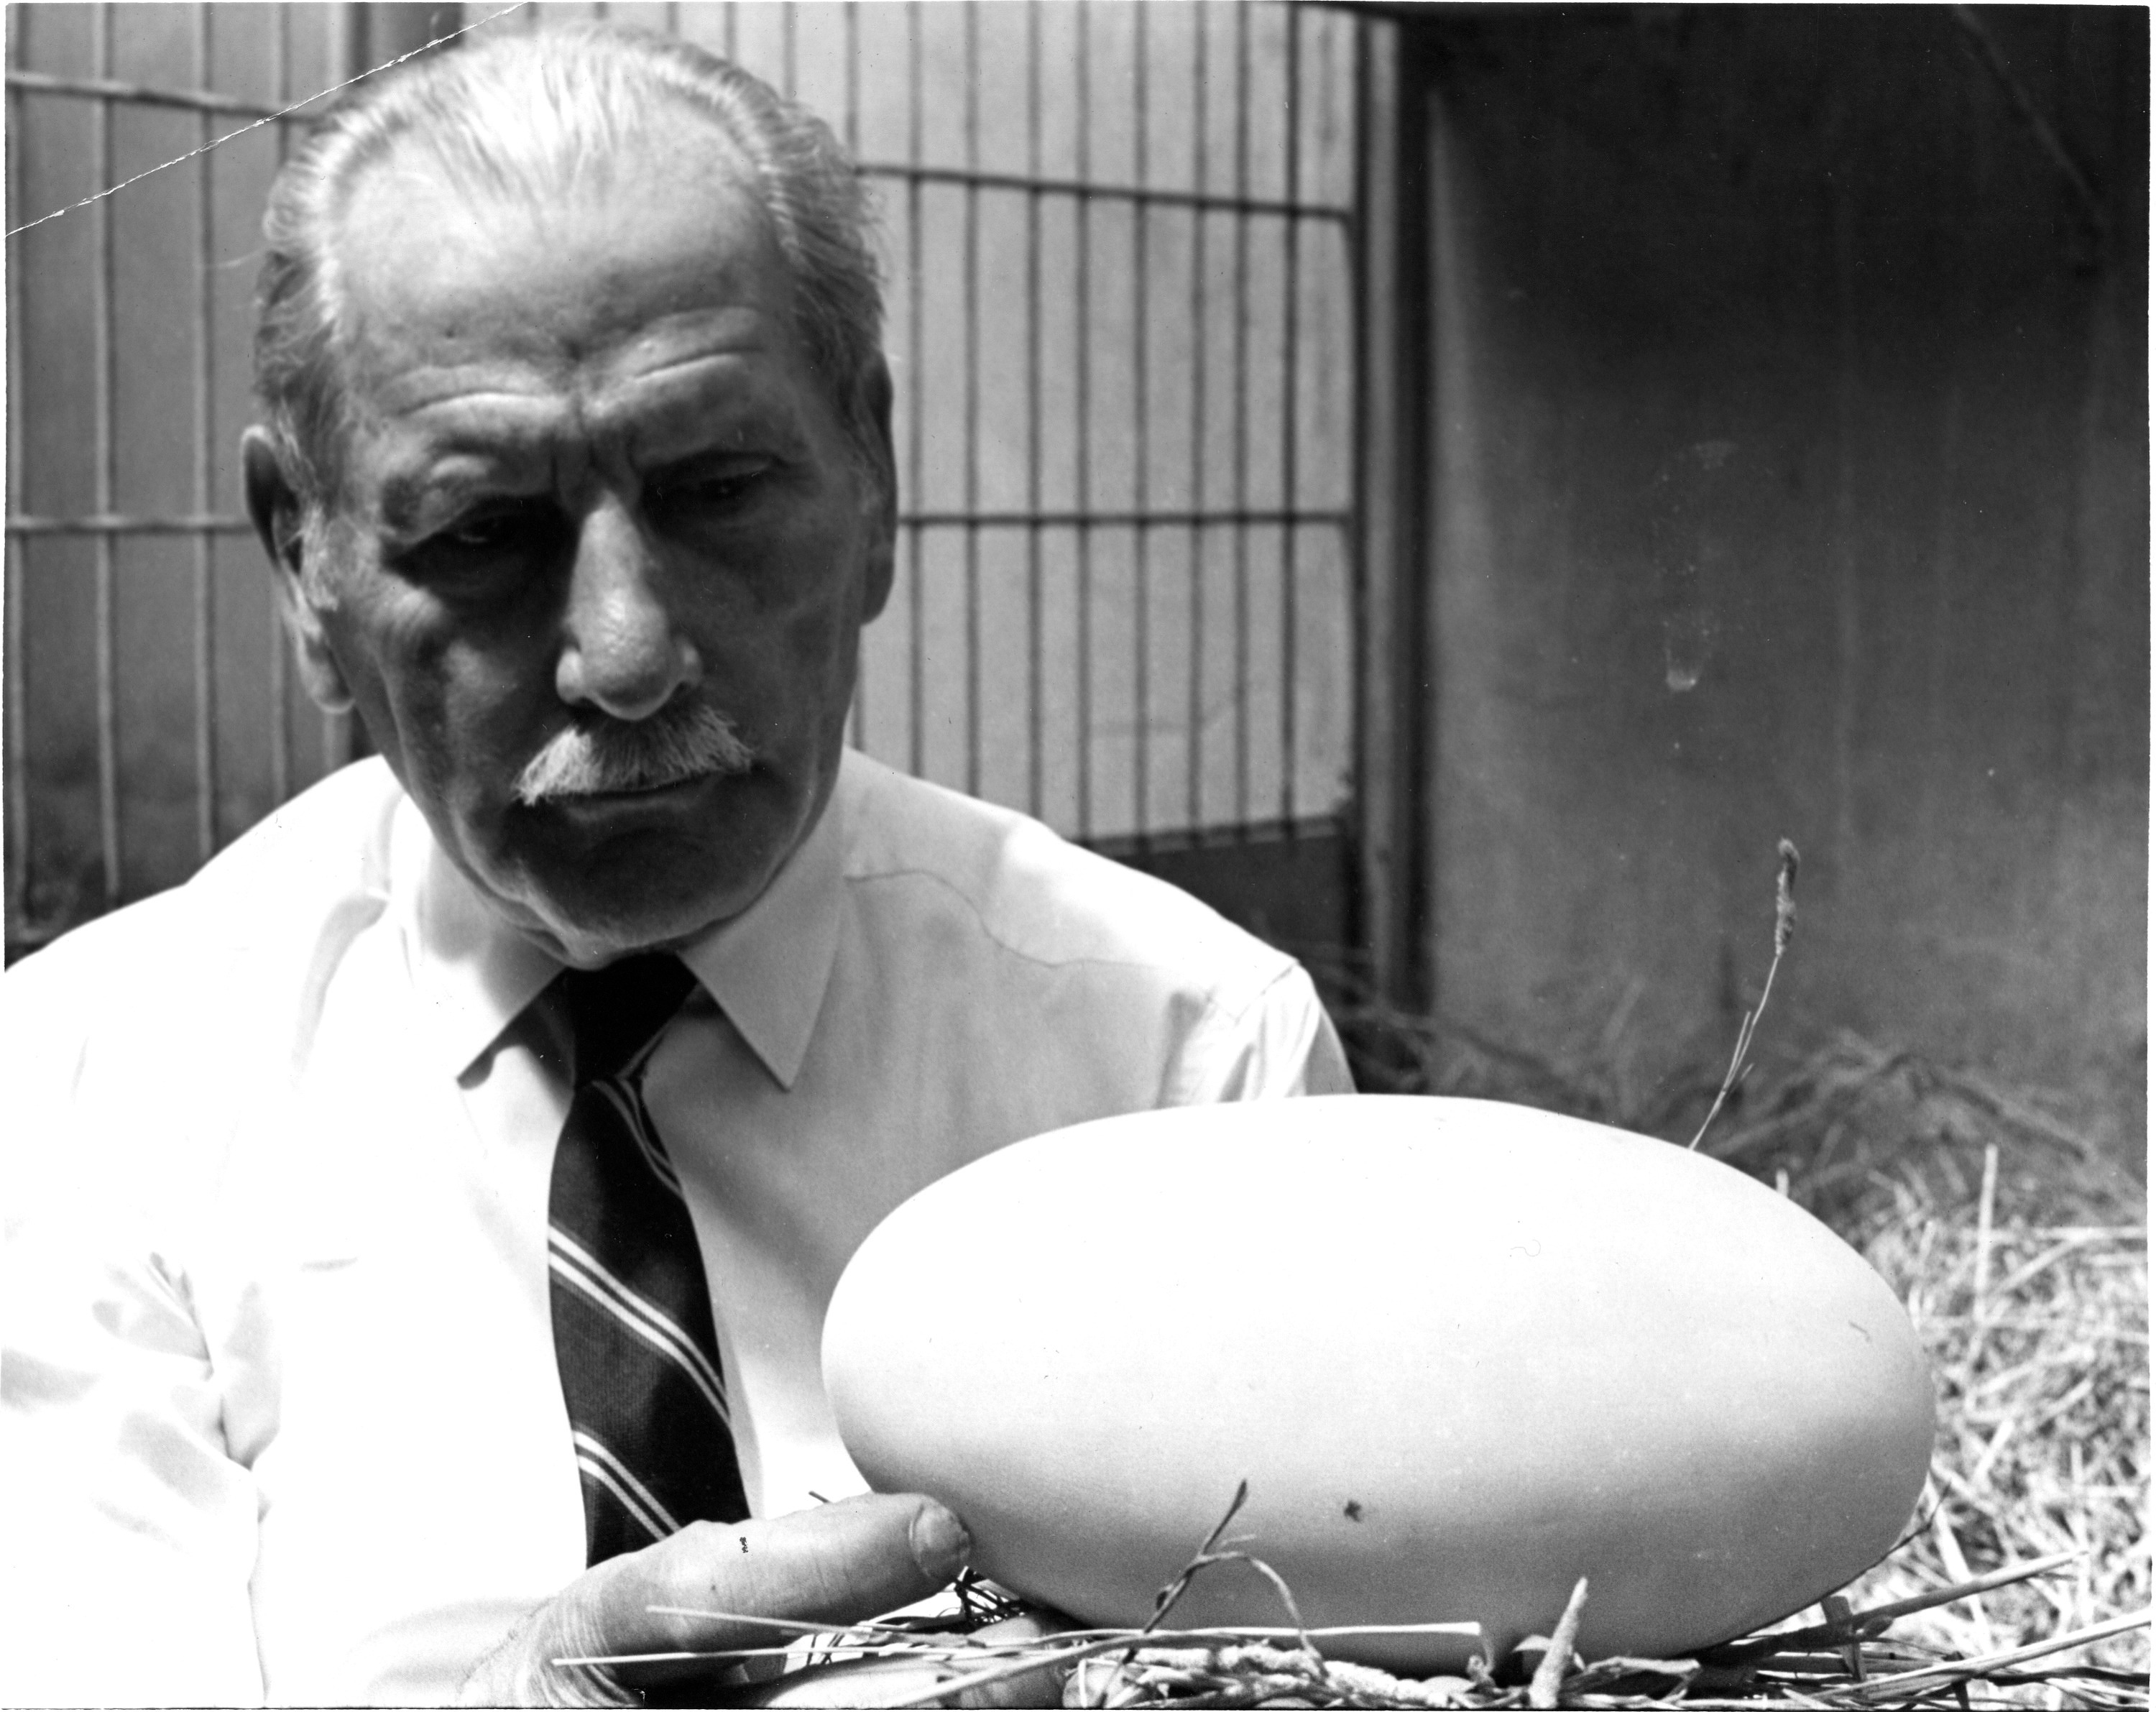 Jonas holds up a large egg, bigger than his face, toward the camera.